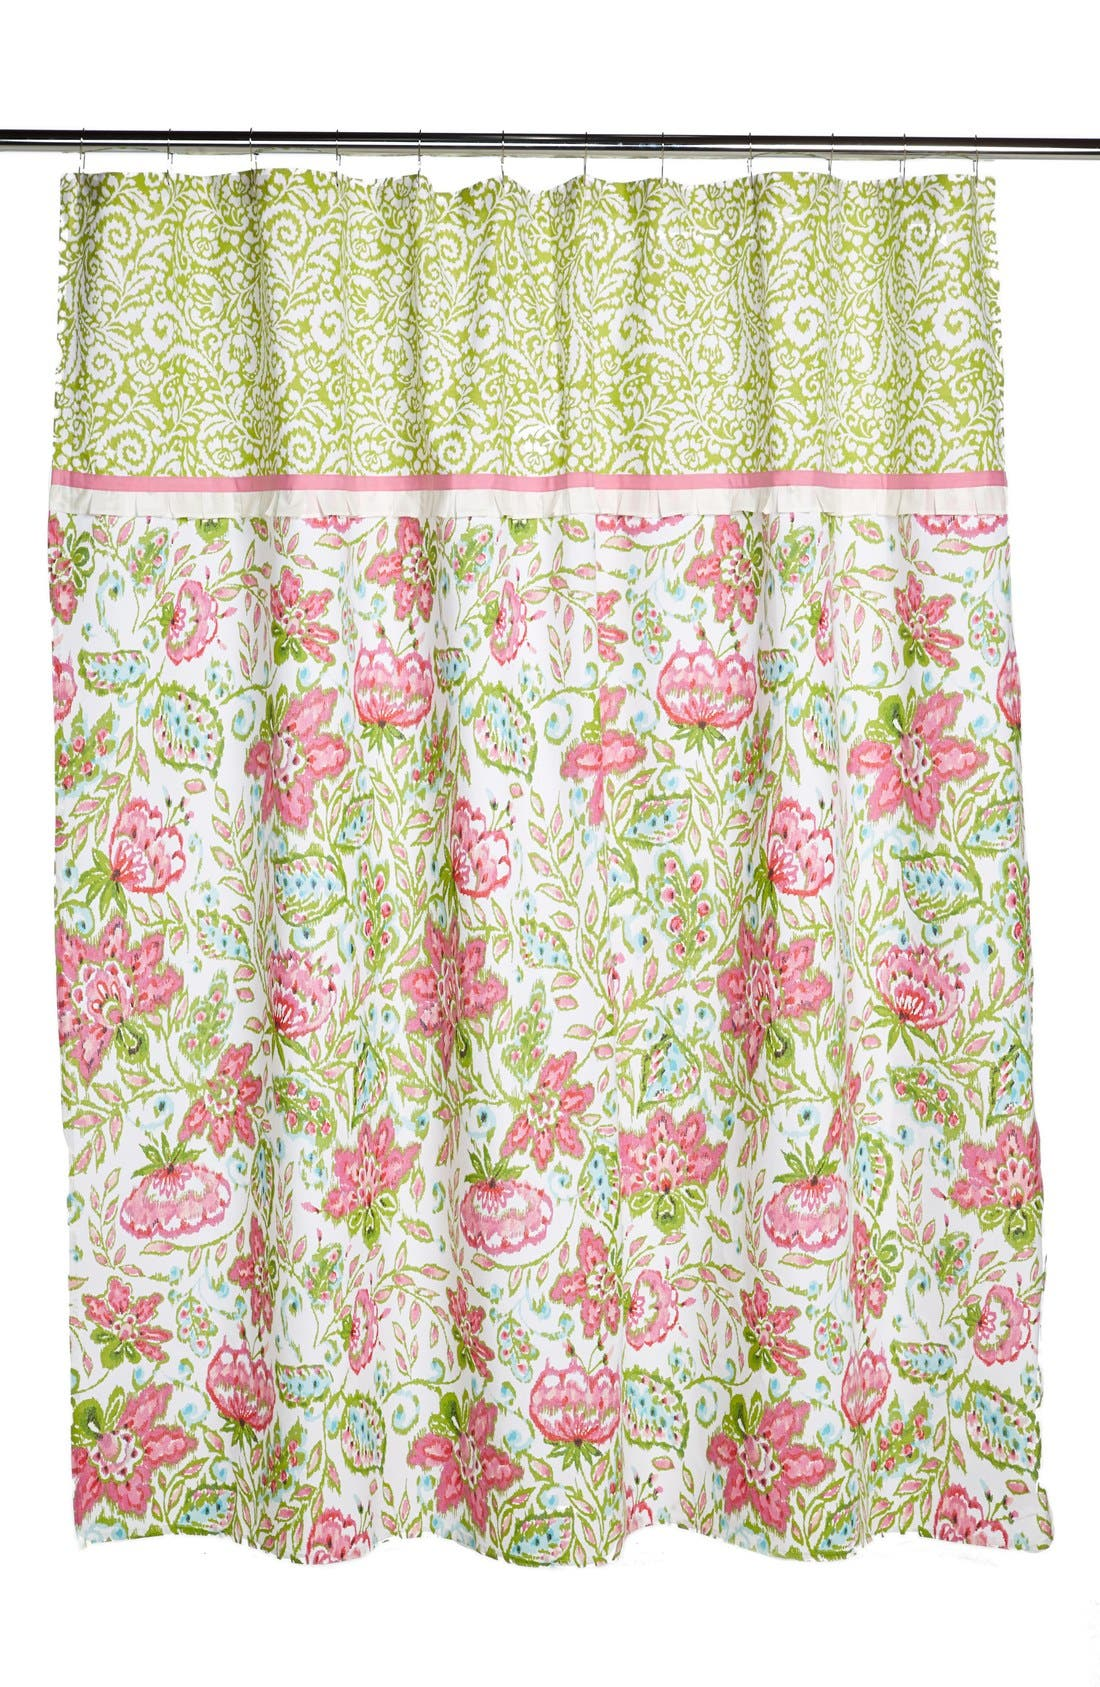 Alternate Image 1 Selected - Dena Home Paisley & Floral Print Shower Curtain